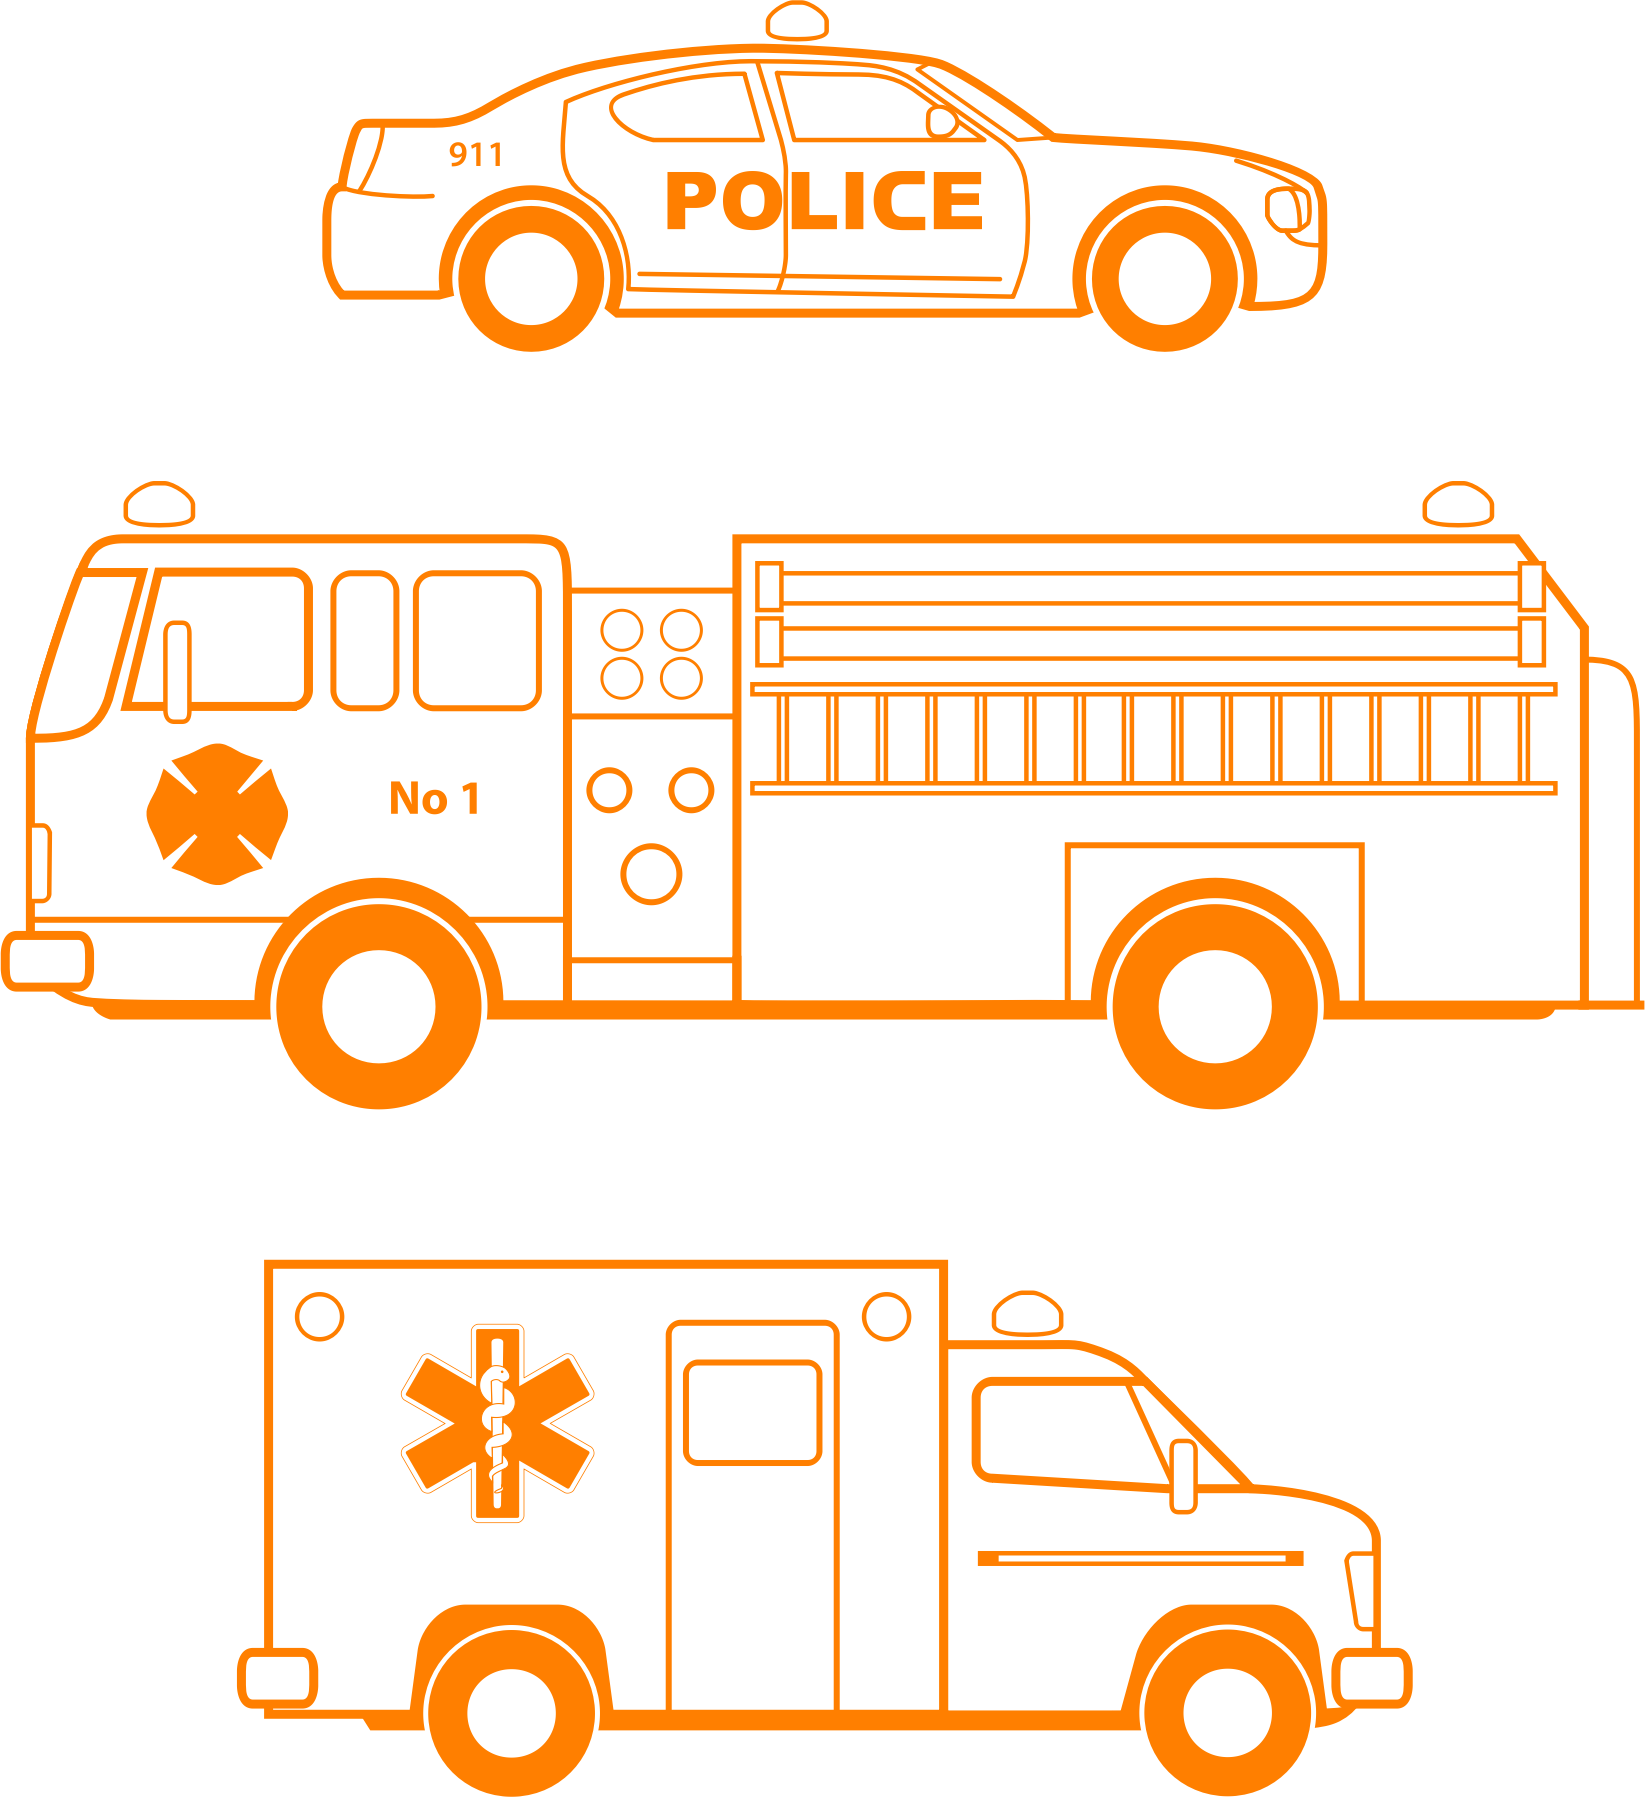 Police car fire truck and ambulance clipart clipart transparent library Firetruck clipart ambulance car, Firetruck ambulance car ... clipart transparent library